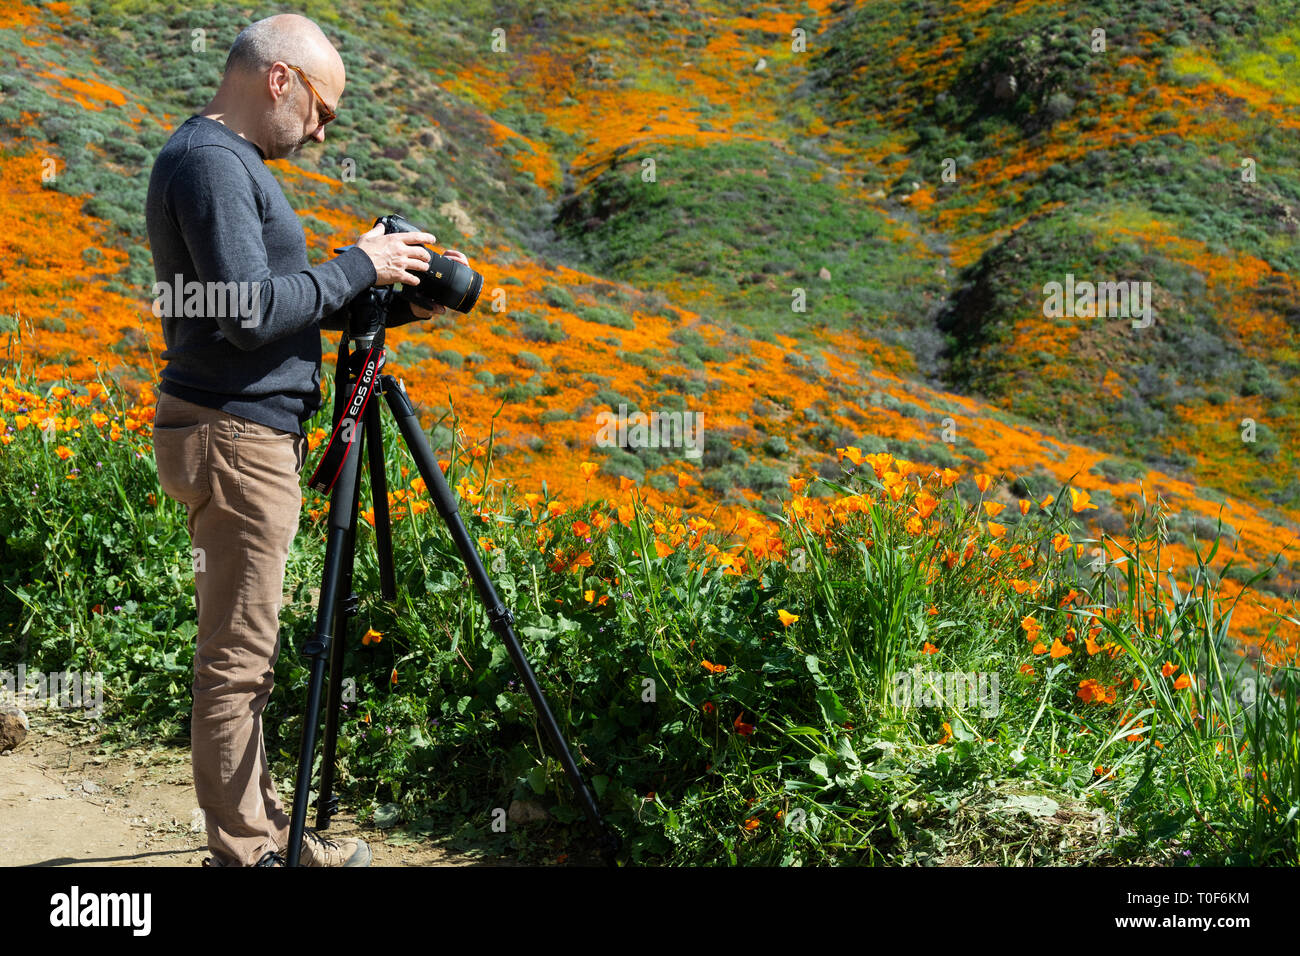 Super Bloom 2019. Prior to its closure, photographers, such as this man, were out in droves to capture photos of the poppies at Walker Canyon. - Stock Image